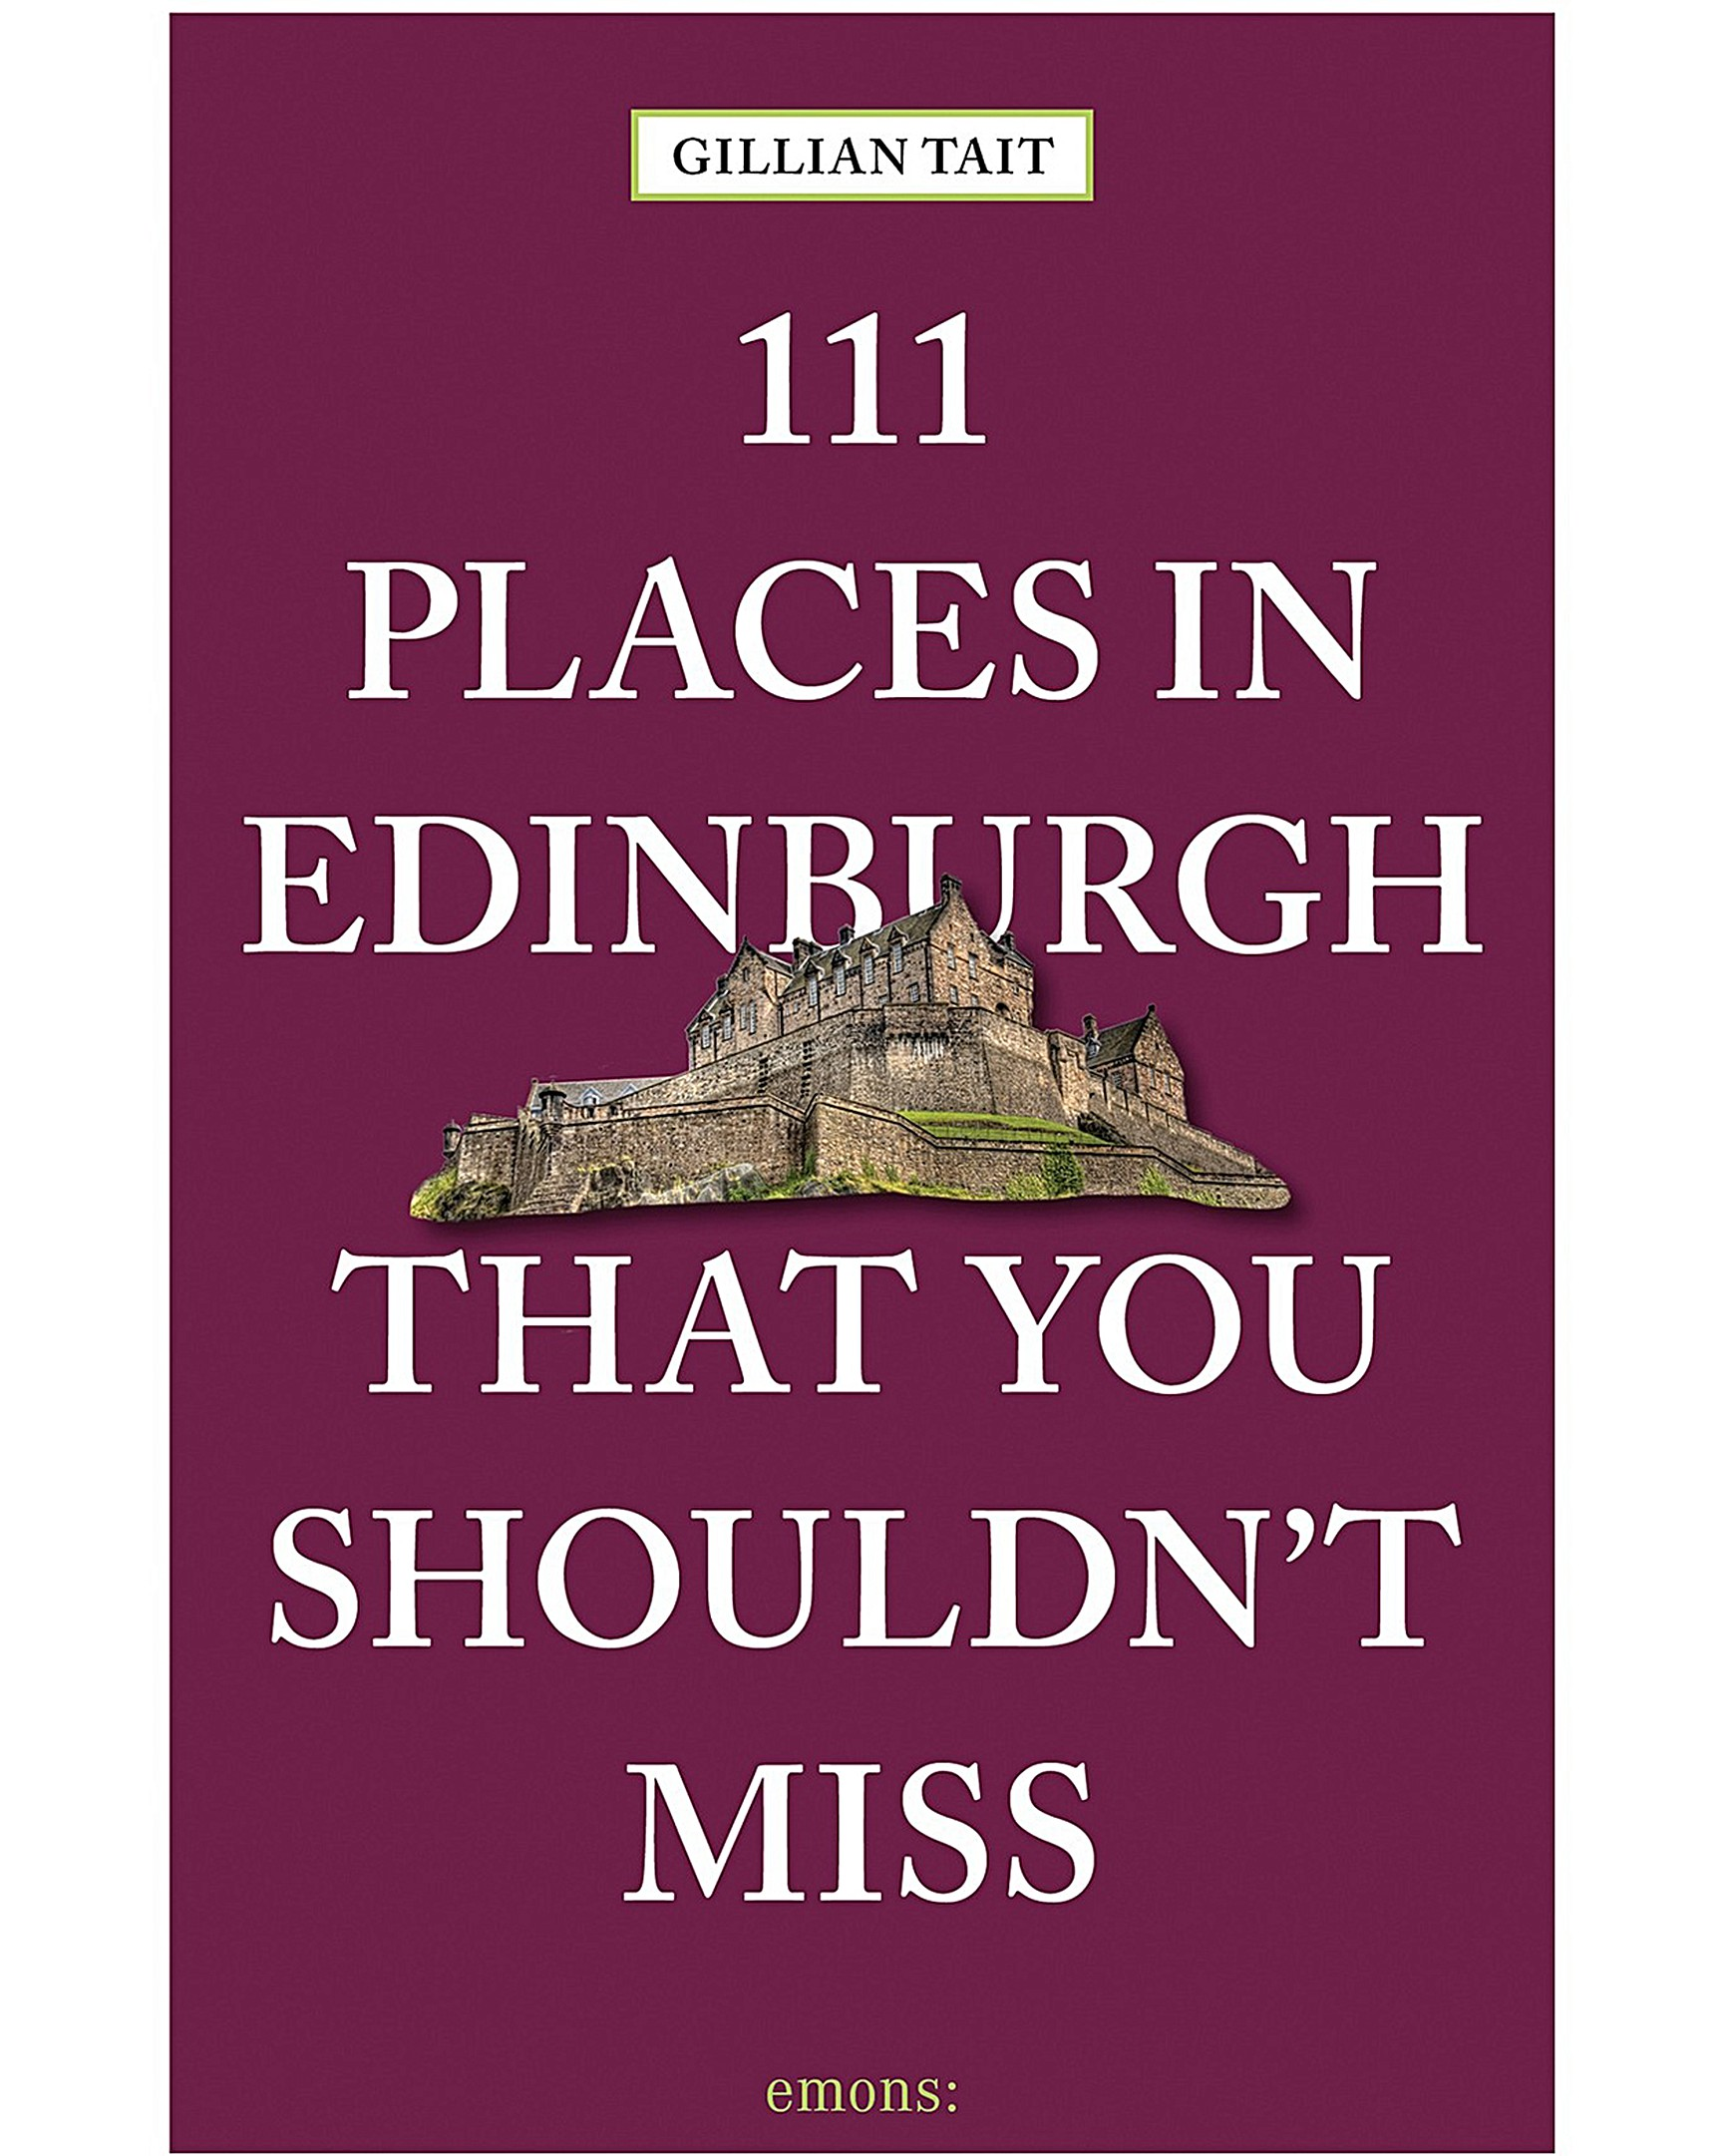 Book Gifts Oliver Bonas 60 Wiring Diagram 111 Places In Edinburgh That You Shouldnt Miss